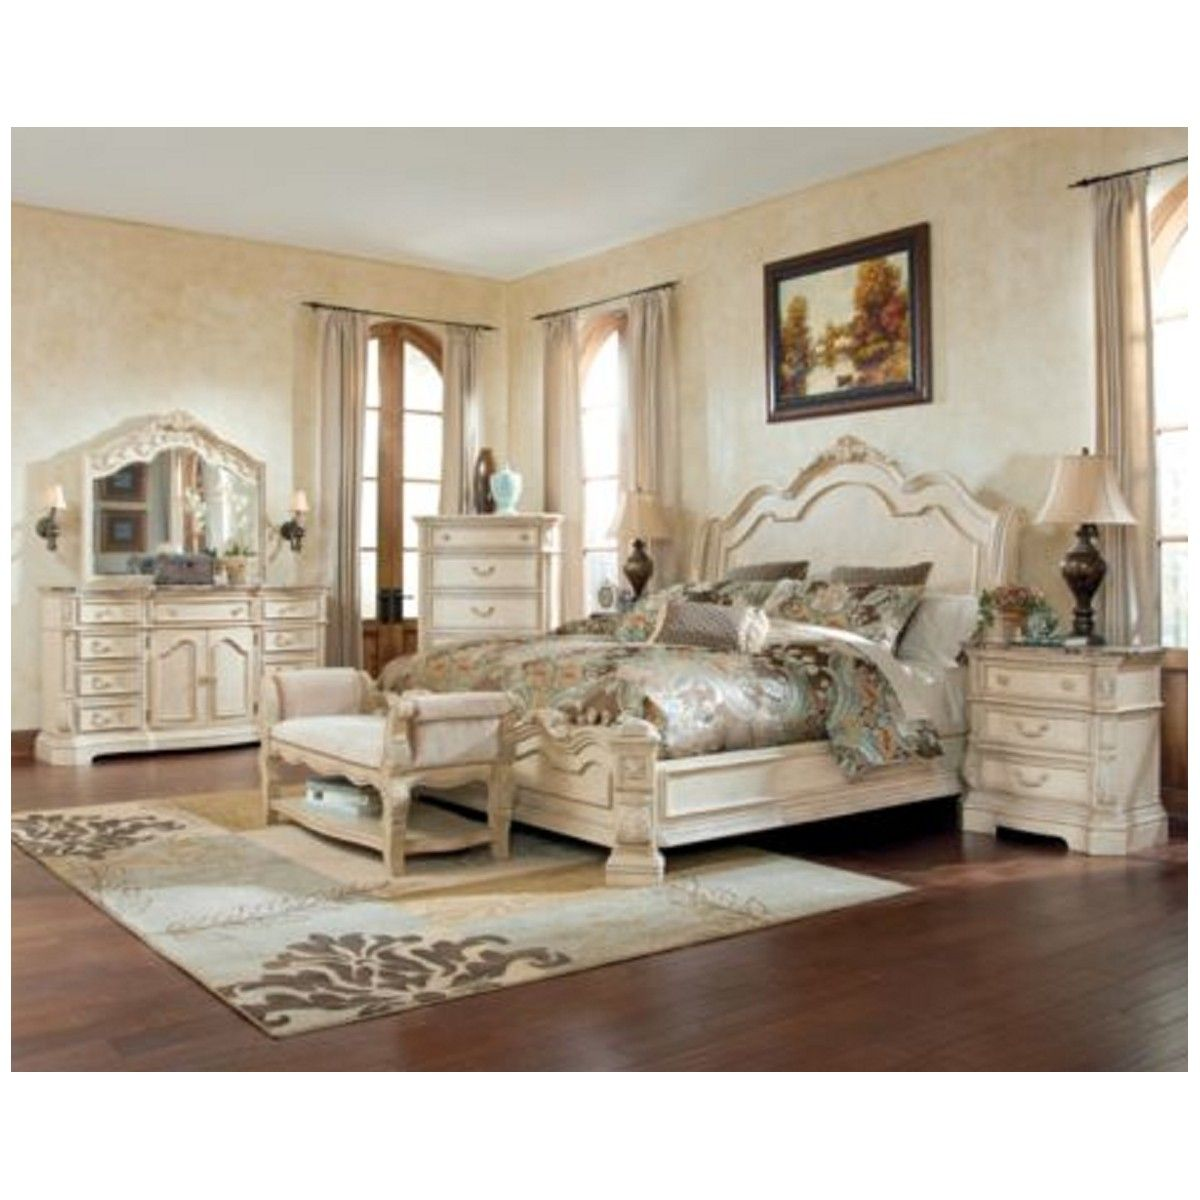 White ashley furniture bedroom sets ashley bedroom - Ashley furniture bedroom packages ...